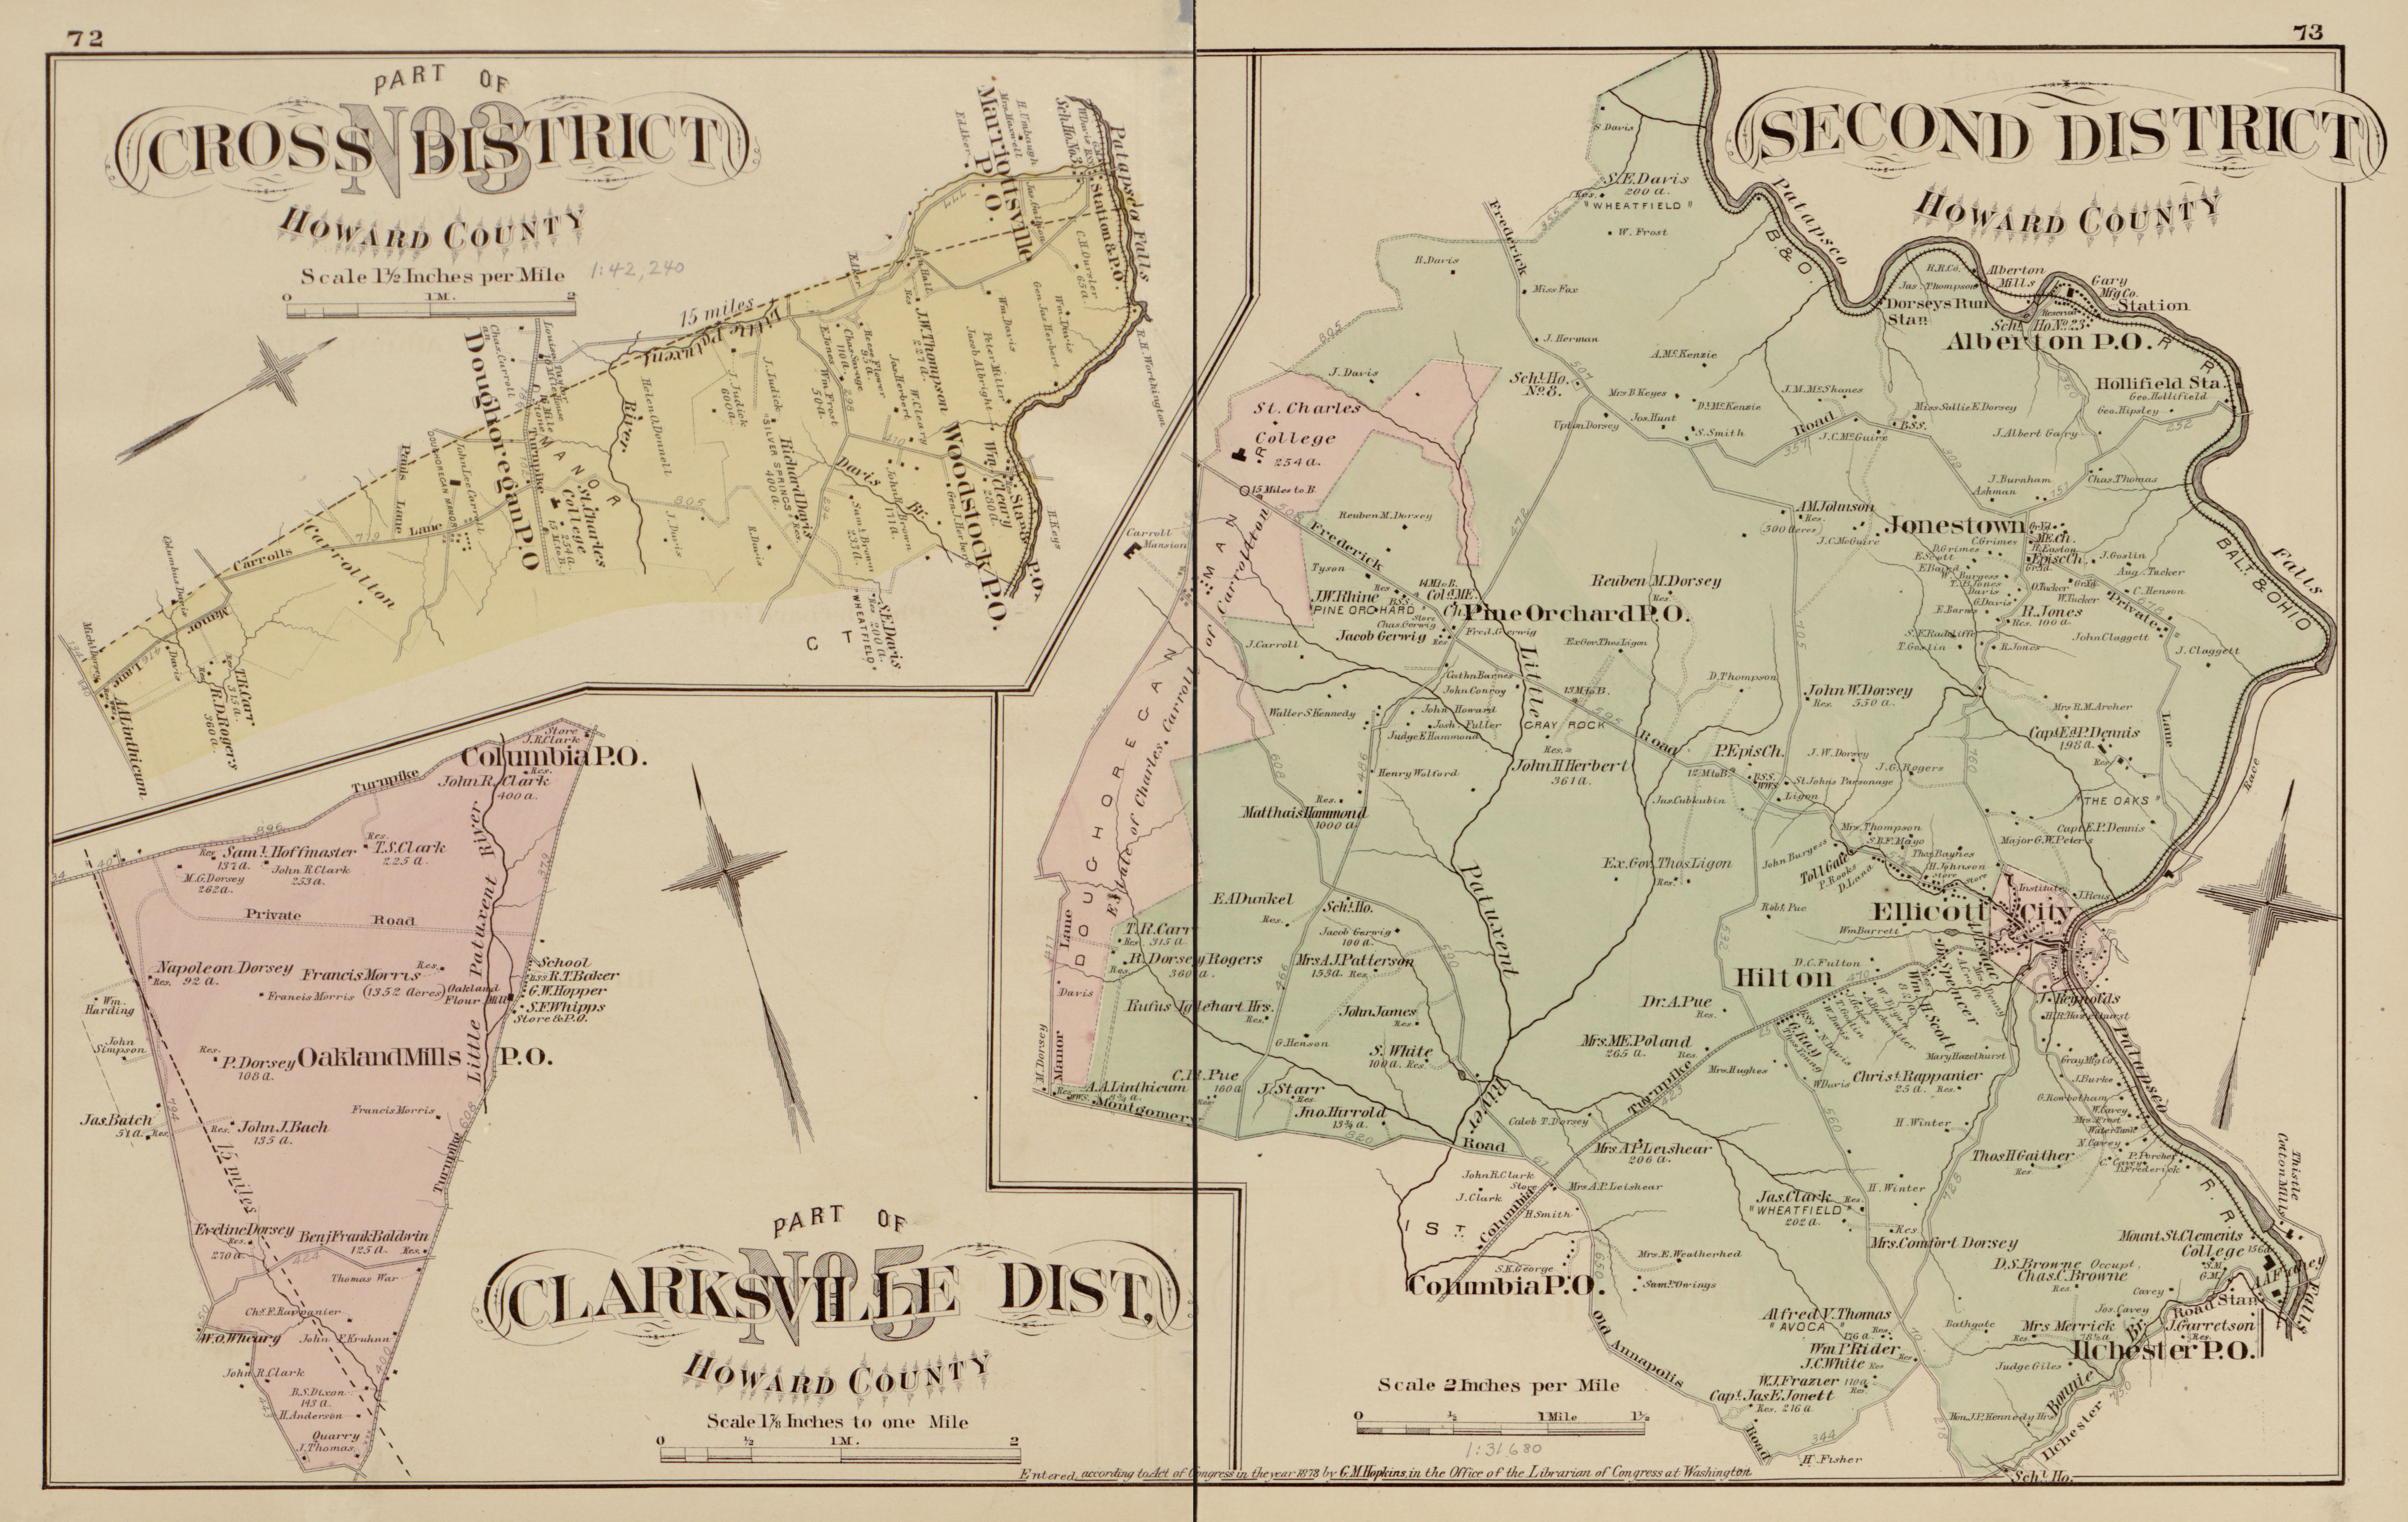 File:Atlas of fifteen miles around Baltimore, including Anne ... on map of marion county, map of clarke county, map of st mary's county, map of rappahannock county, map of aa county, map of harford county, map of jackson county, map of kings county, map of calvert county, map of clark county, map of duval county, map of laurel county, map of baltimore county public schools, map of baltimore county md, map of garrett county, map of talbot county, map of preston county, map of caroline county, map of prince george's county, map of howard county md,